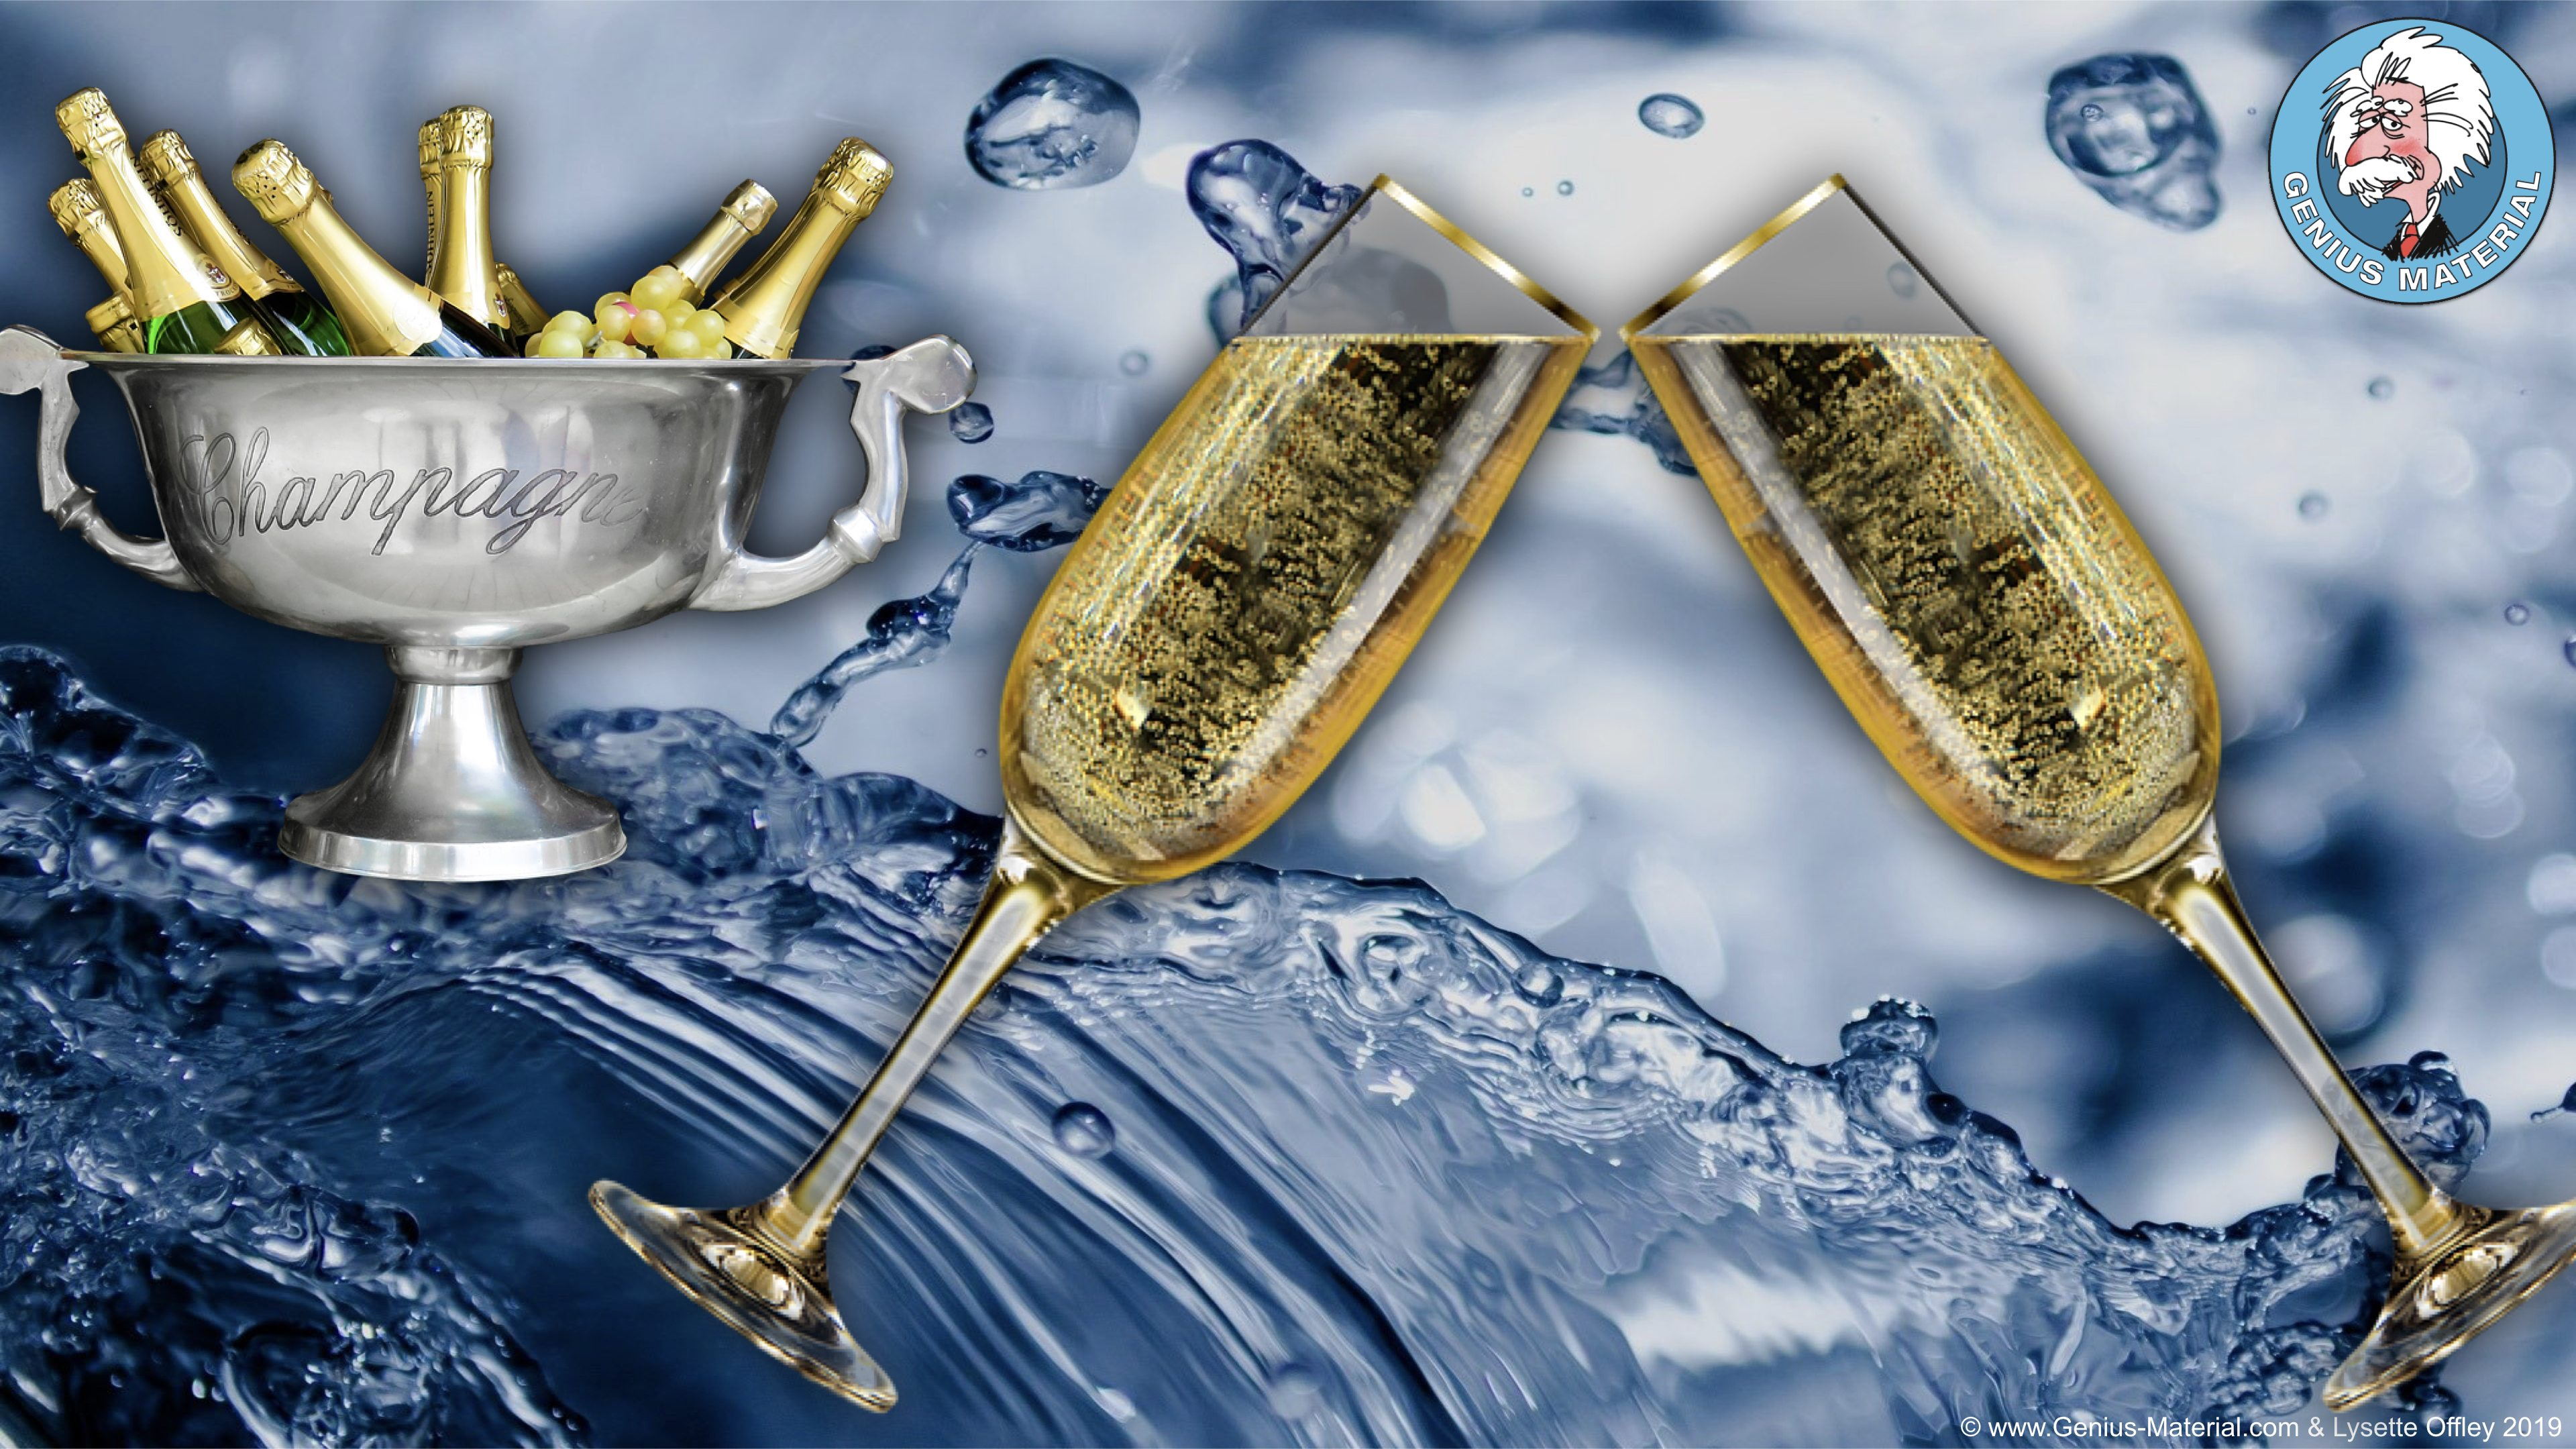 pass Diploma and Chartered Financial exams - champagne